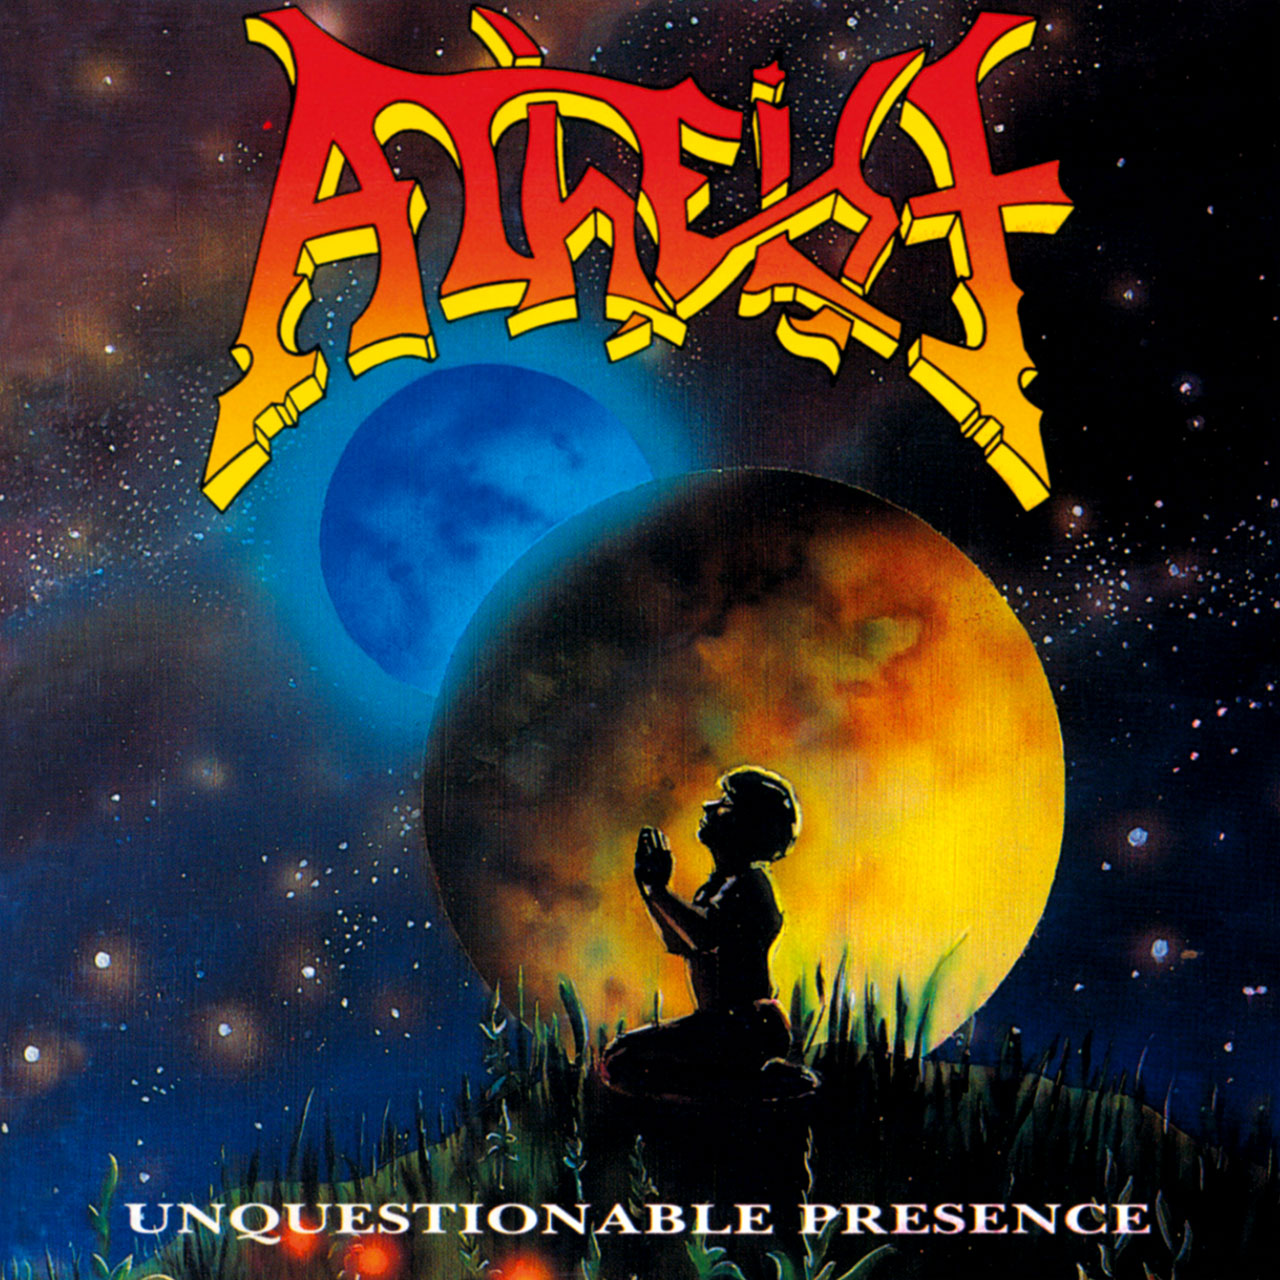 Atheist - Unquestionable Presence (2005 Reissue) (CD)